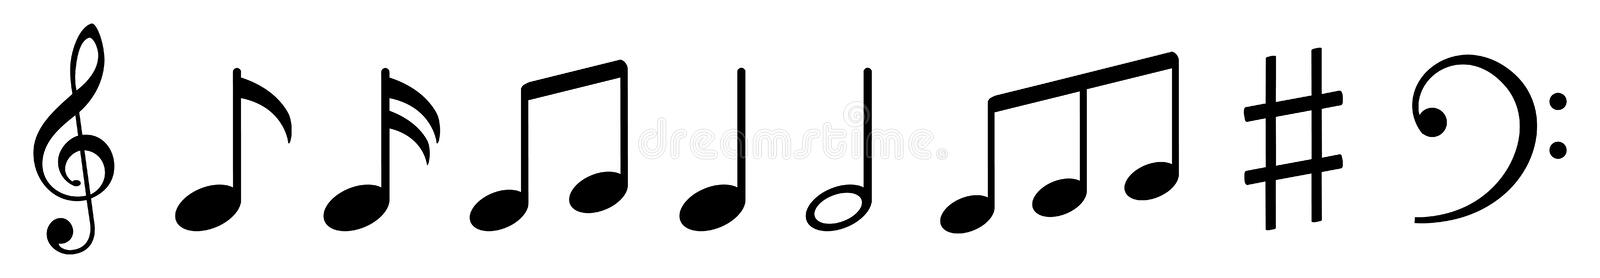 Music notes icons set, group musical notes signs – vector stock illustration